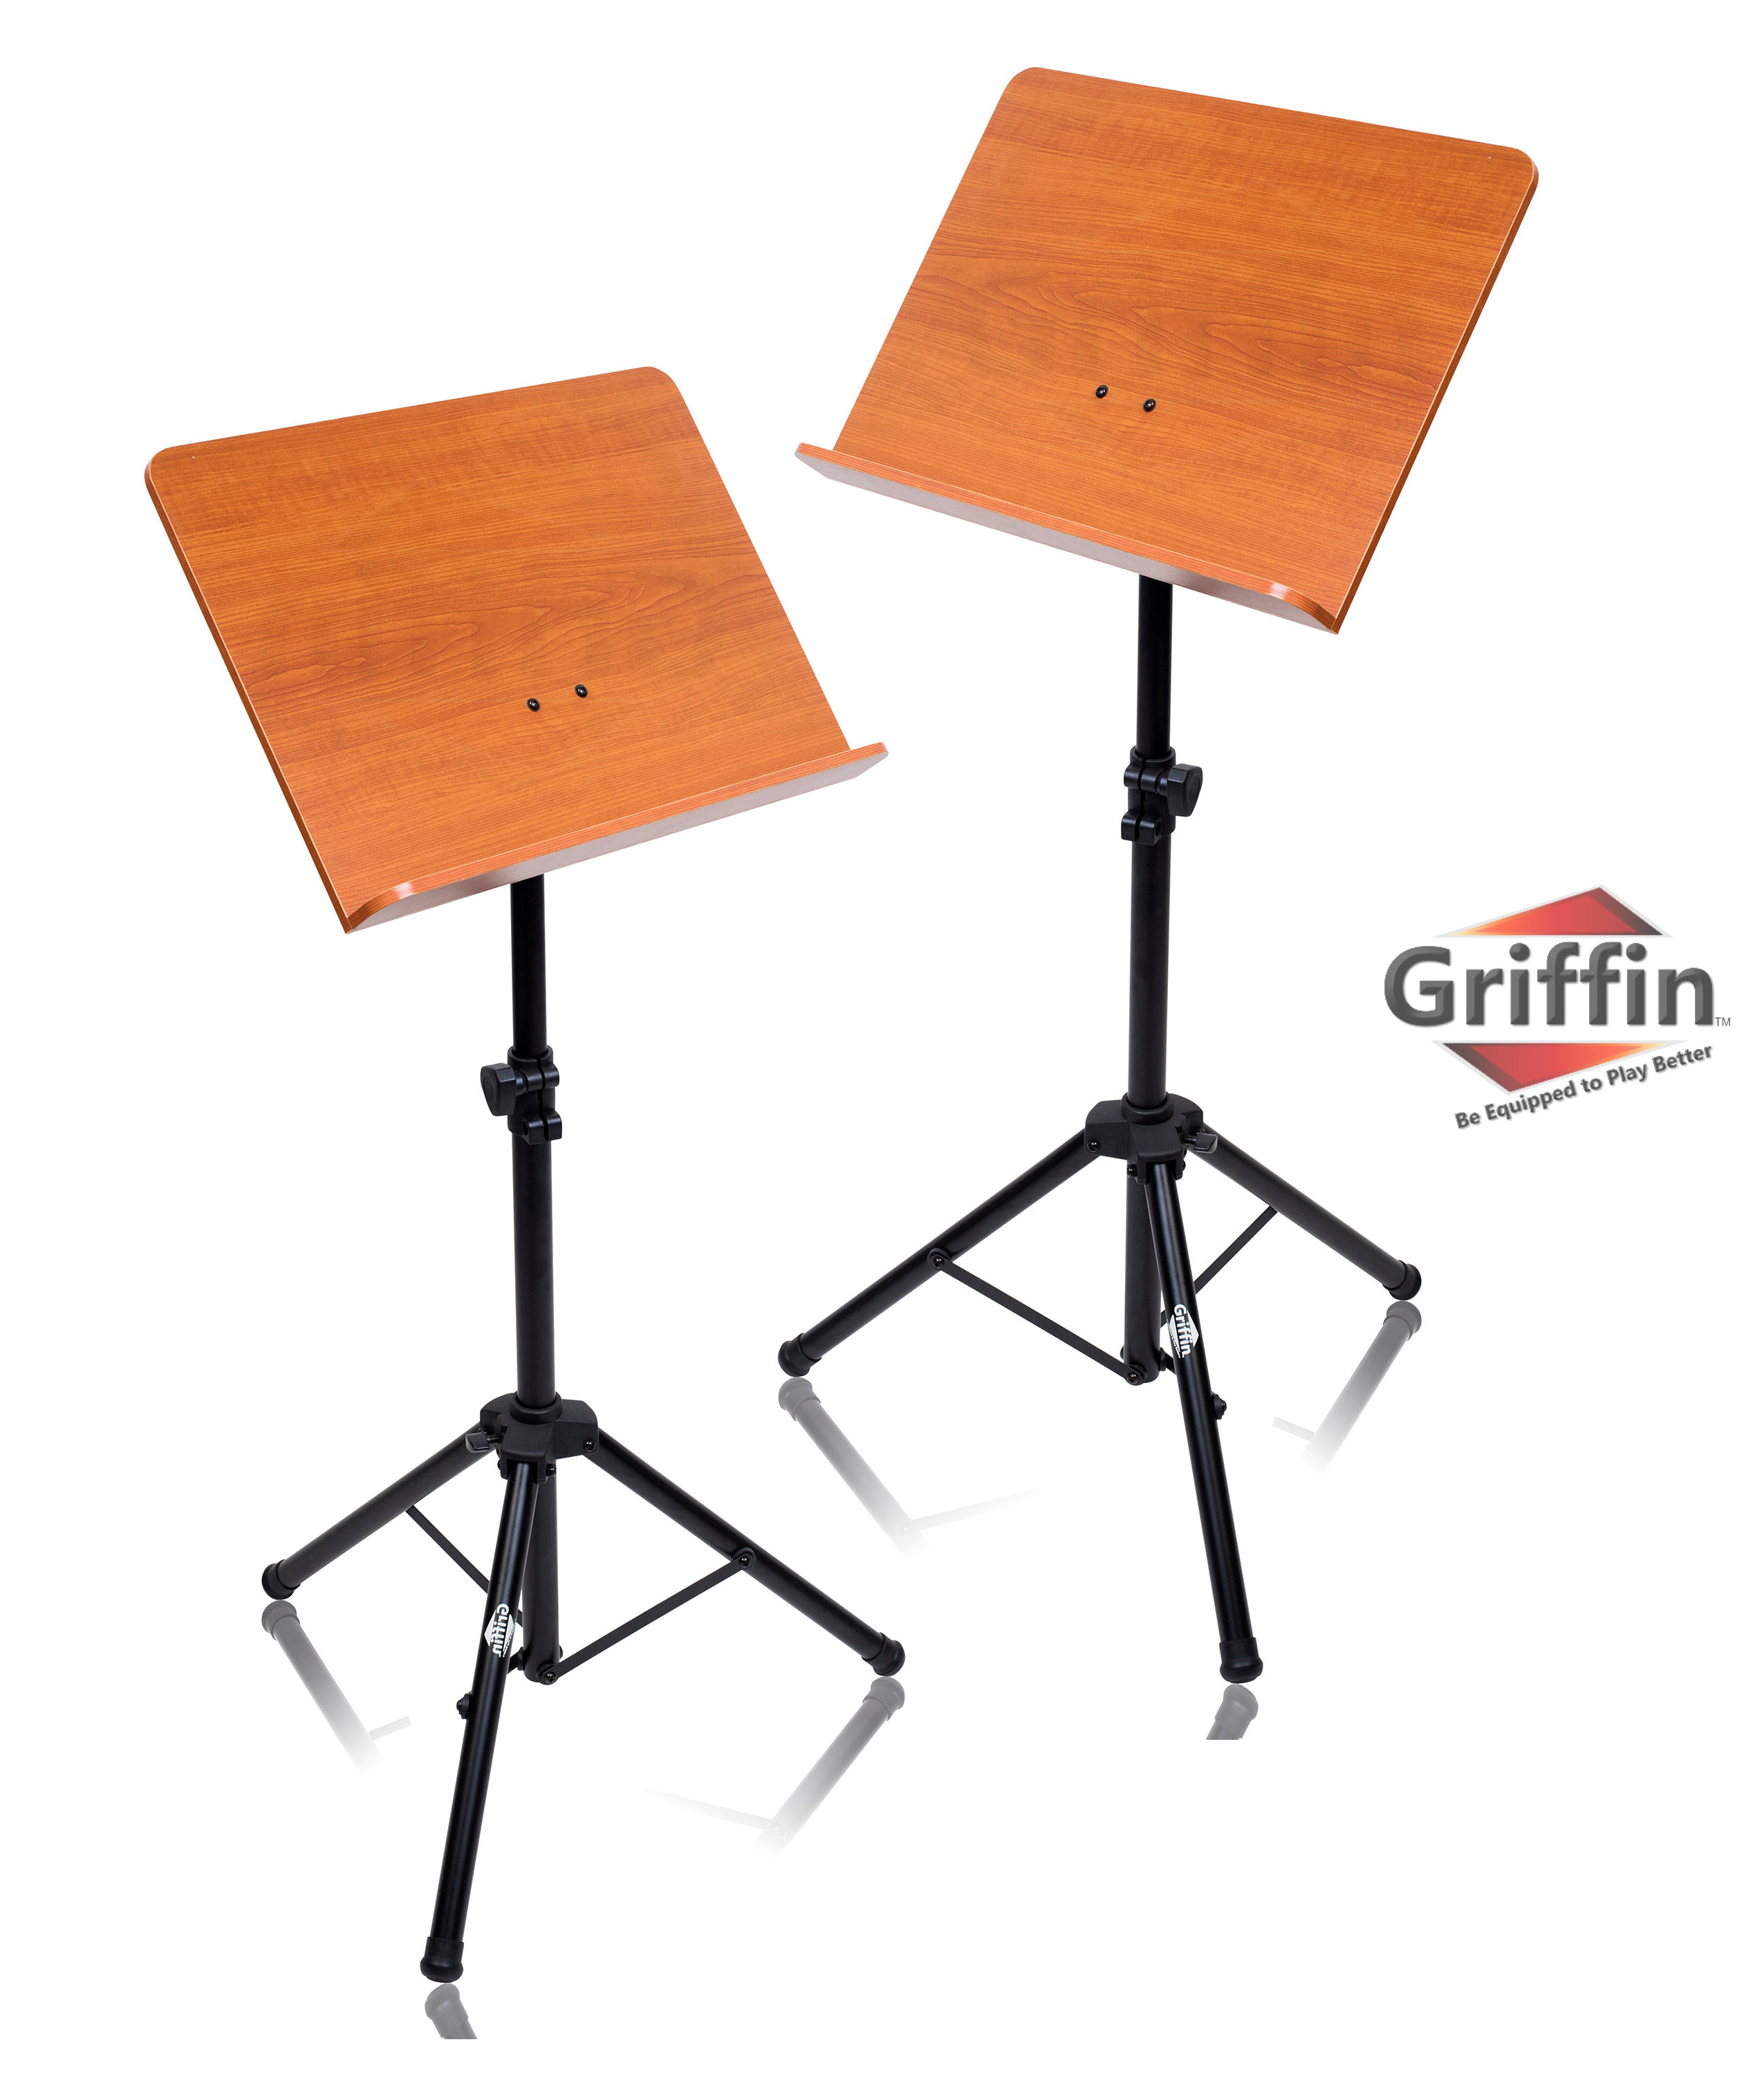 Wood Music Stand (2 Pack) by Griffin | Wooden Bookplate Deluxe CONDUCTOR SHeet Holder with... by Griffin